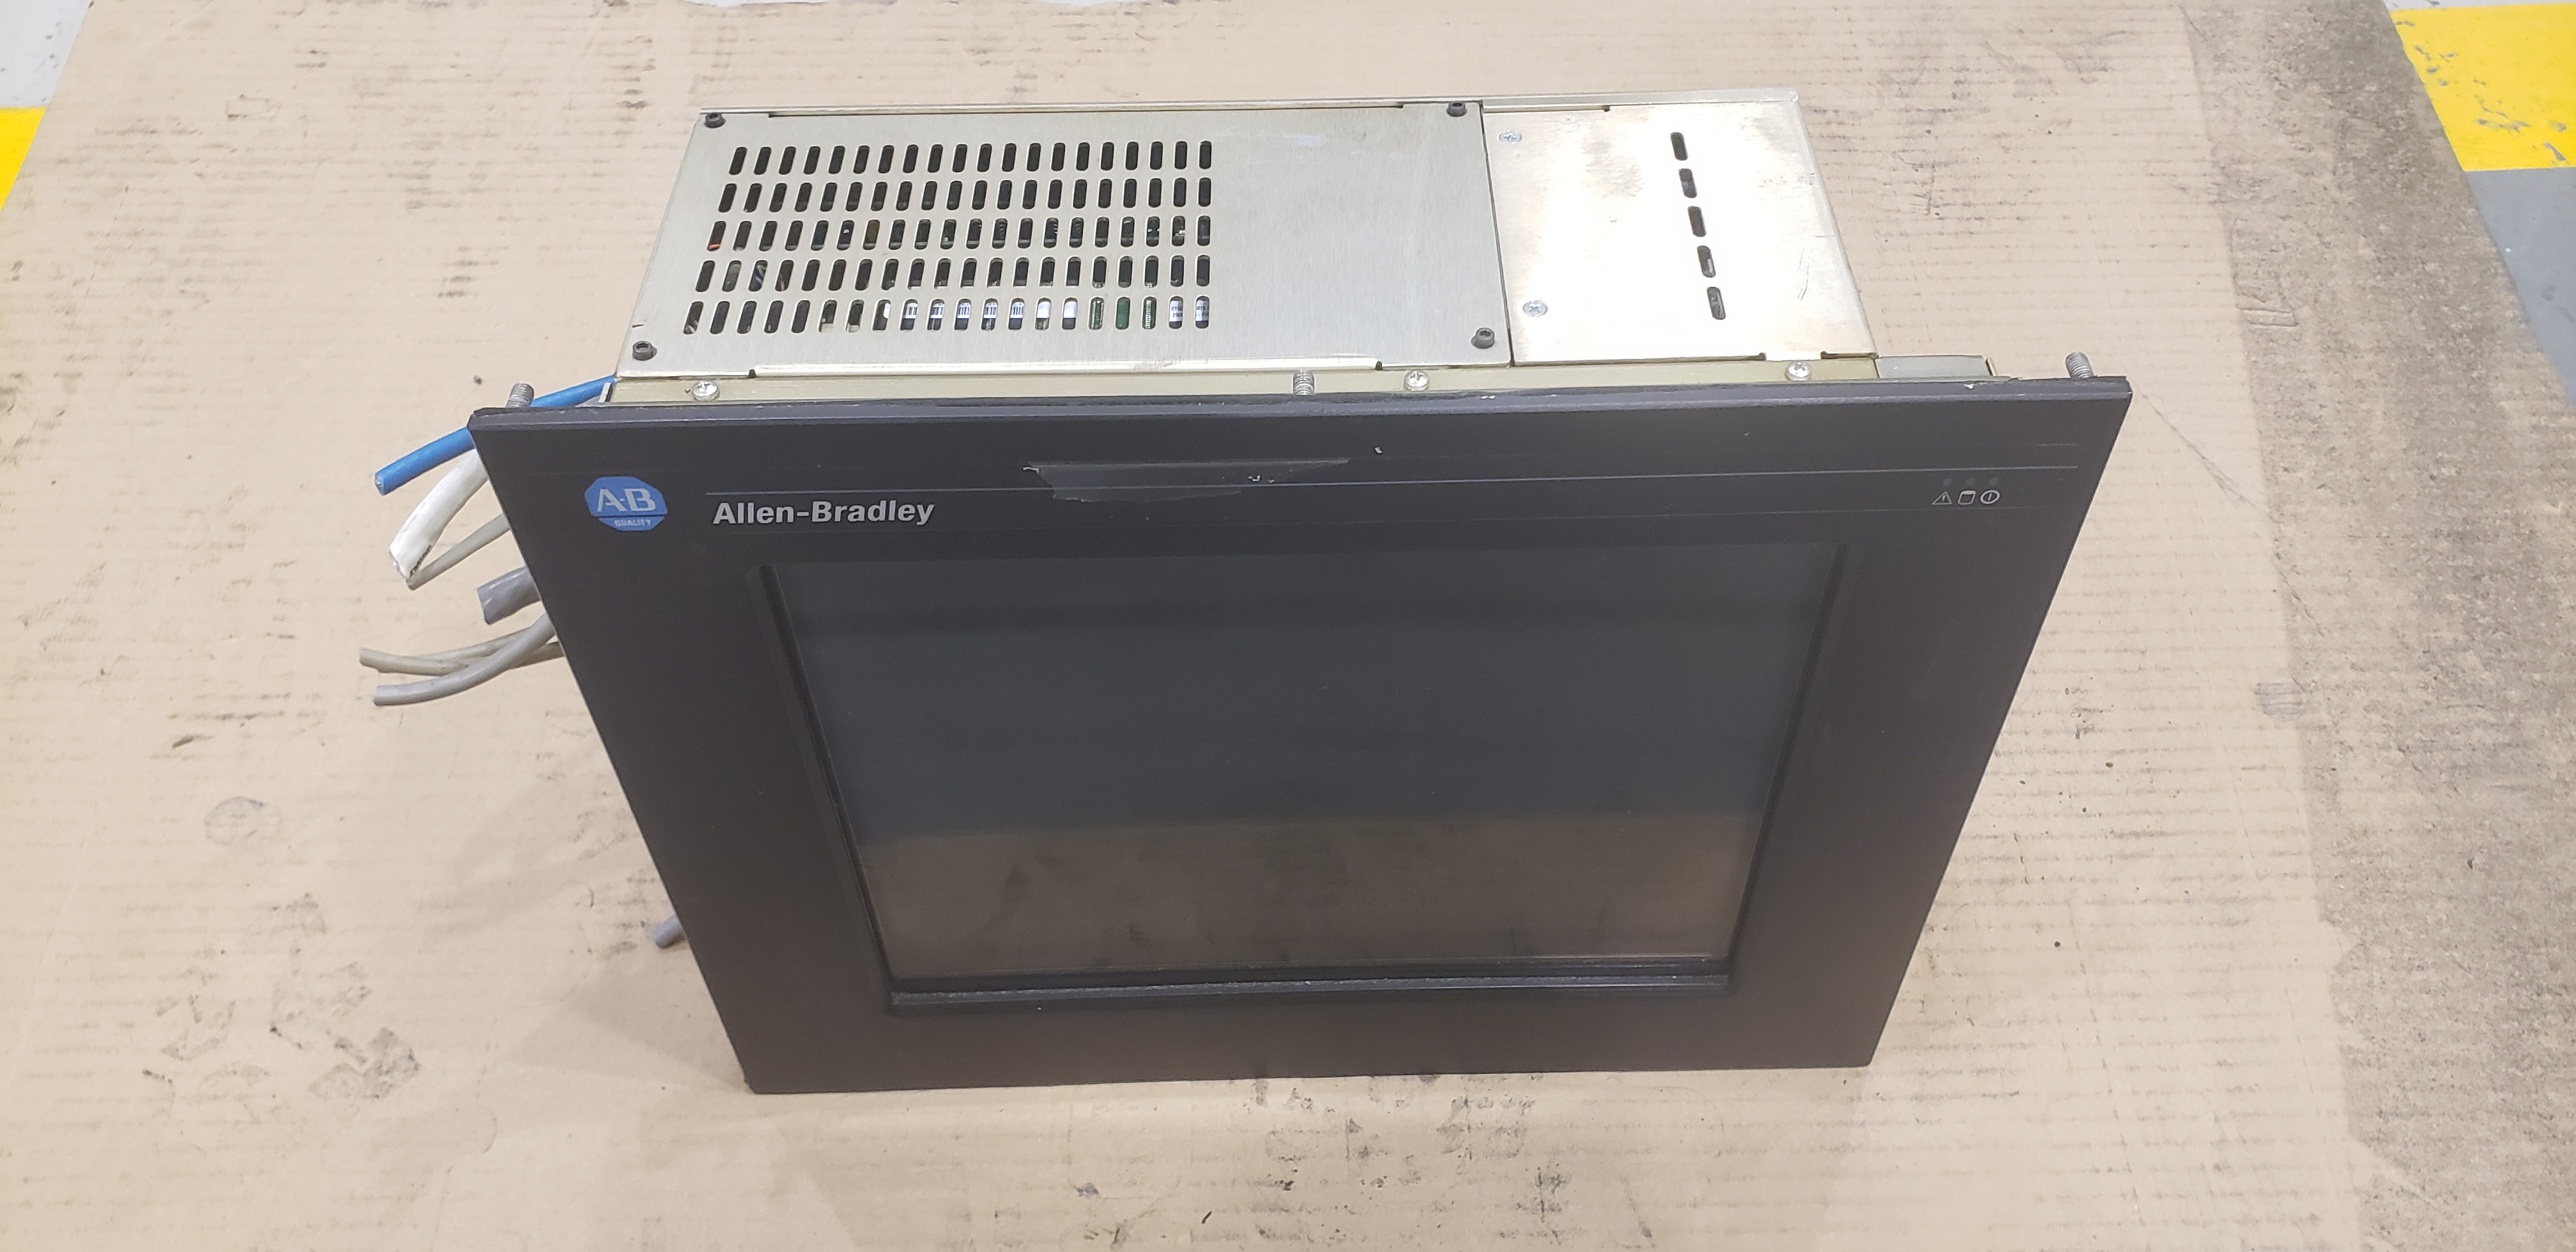 Allen-Bradley Display Panel / Computer